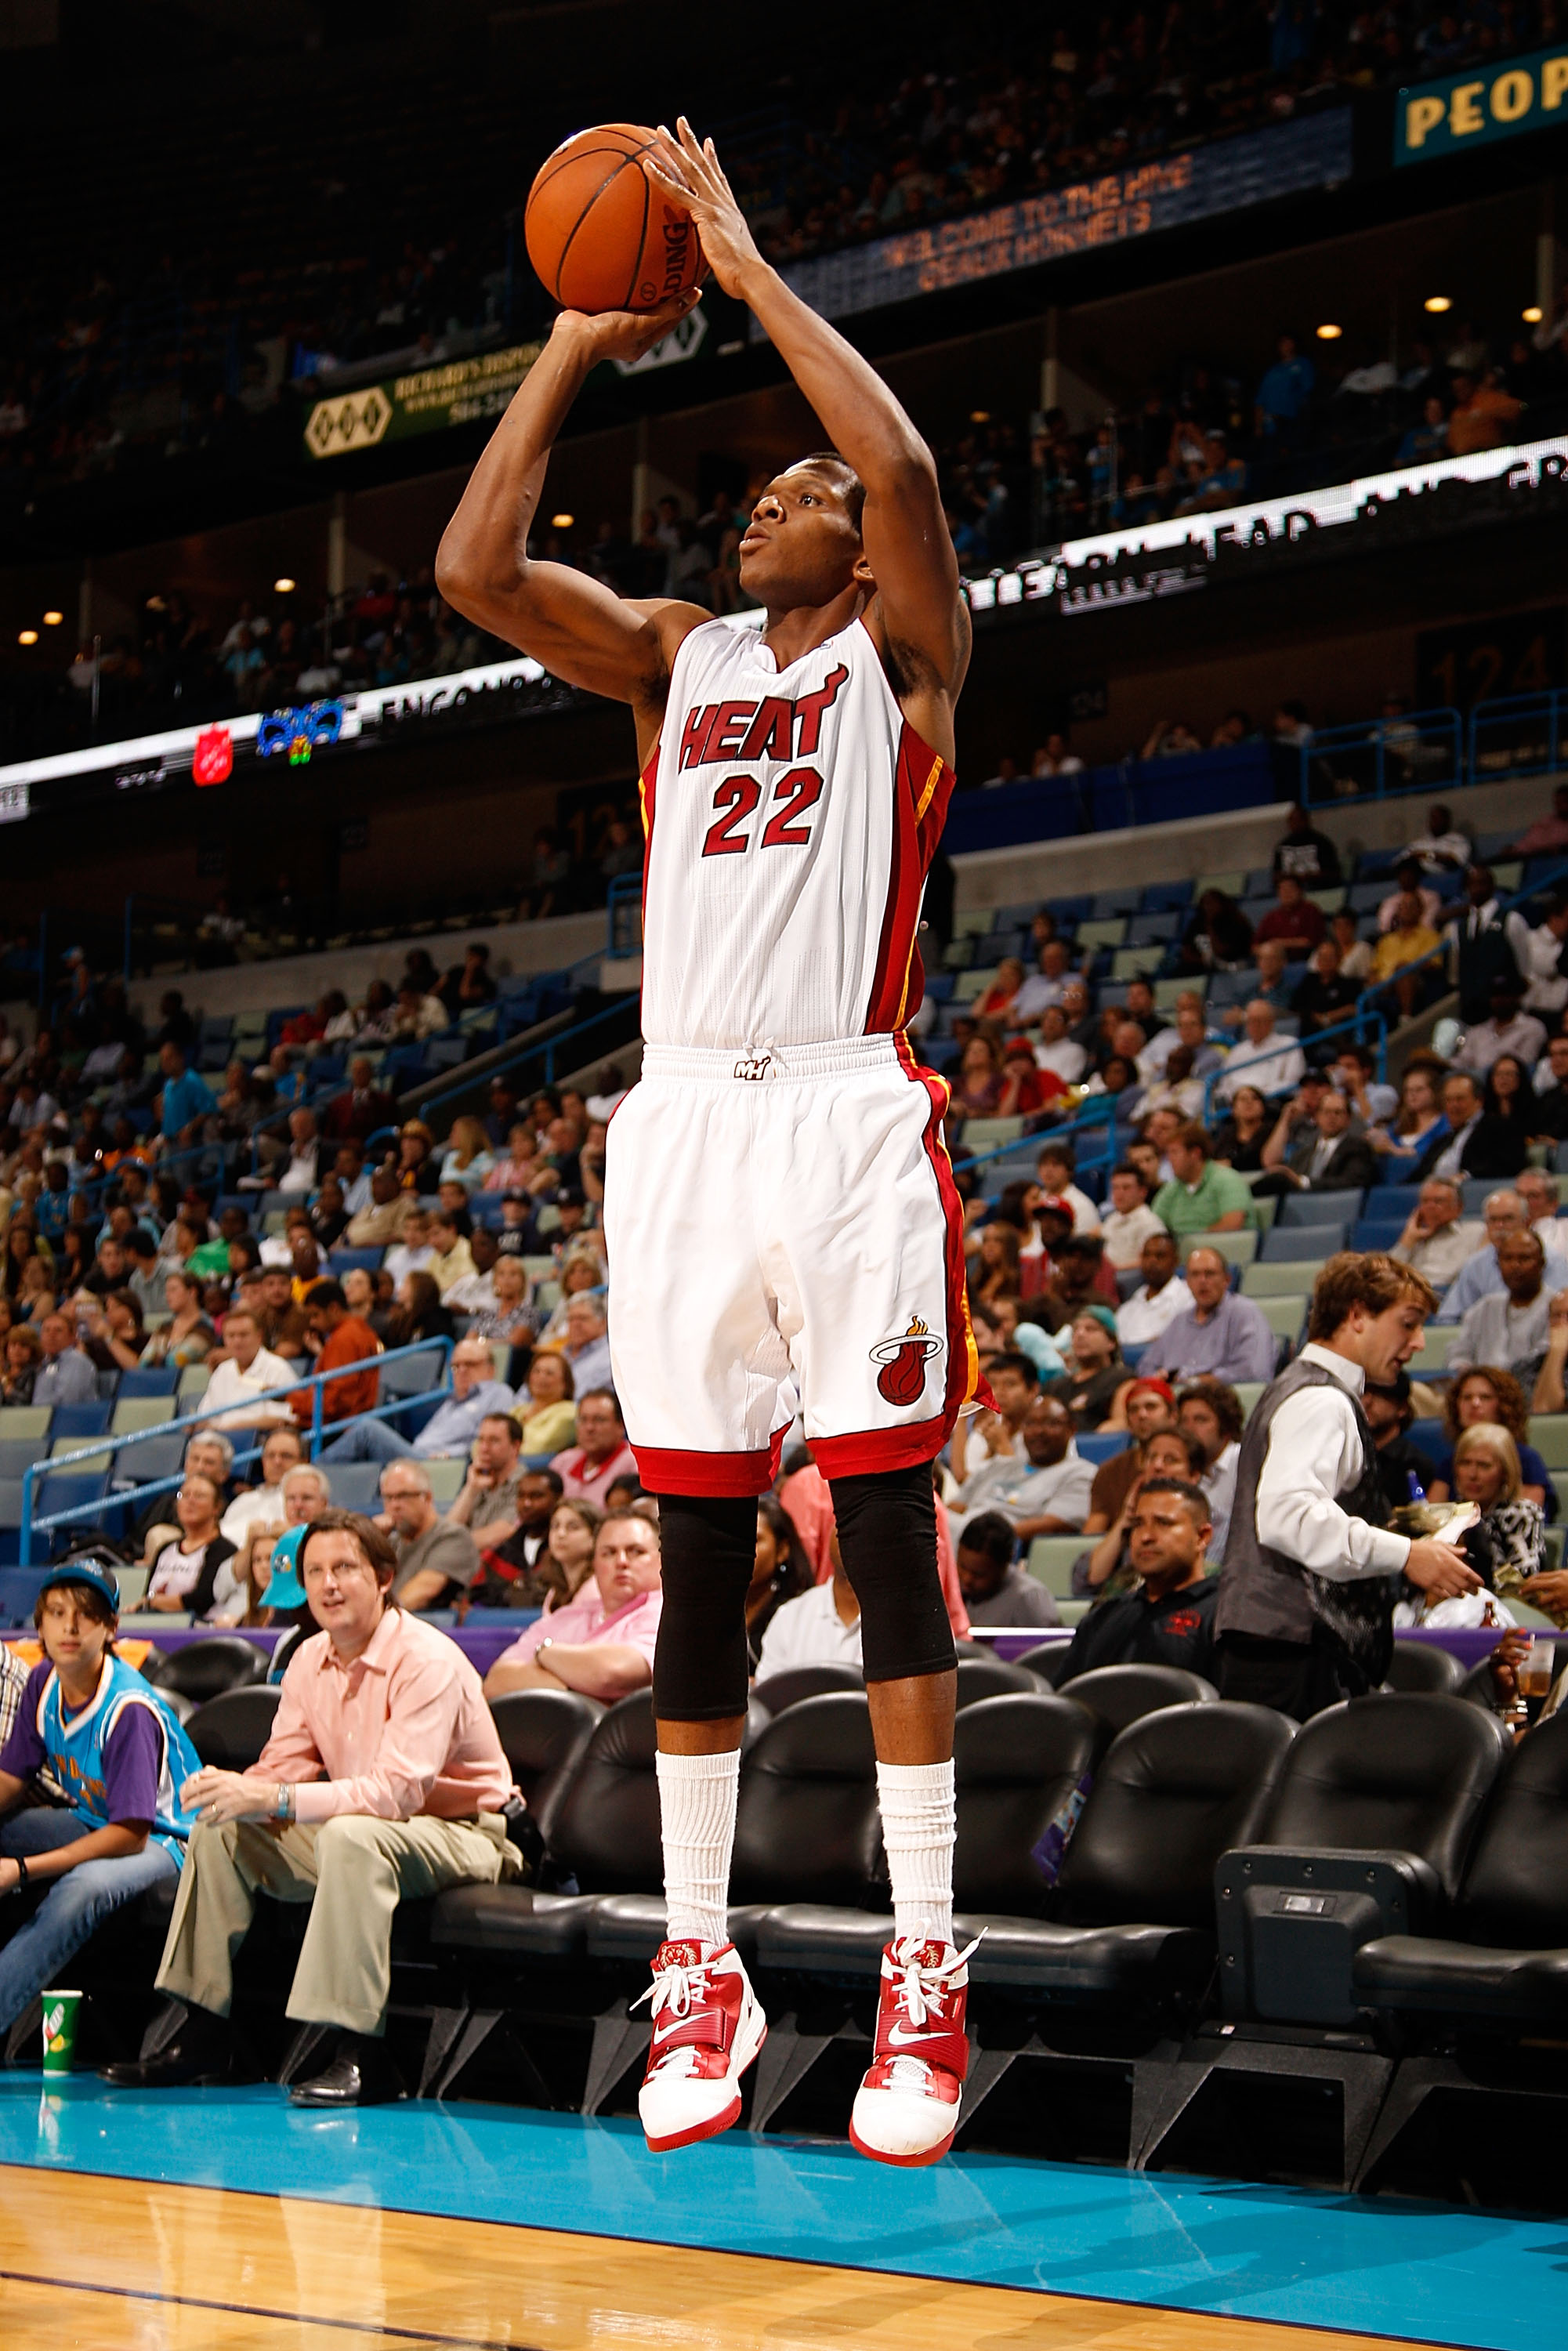 NEW ORLEANS - OCTOBER 13:  James Jones #22 of the Miami Heat shoots the ball against the New Orleans Hornets at the New Orleans Arena on October 13, 2010 in New Orleans, Louisiana.  NOTE TO USER: User expressly acknowledges and agrees that, by downloading